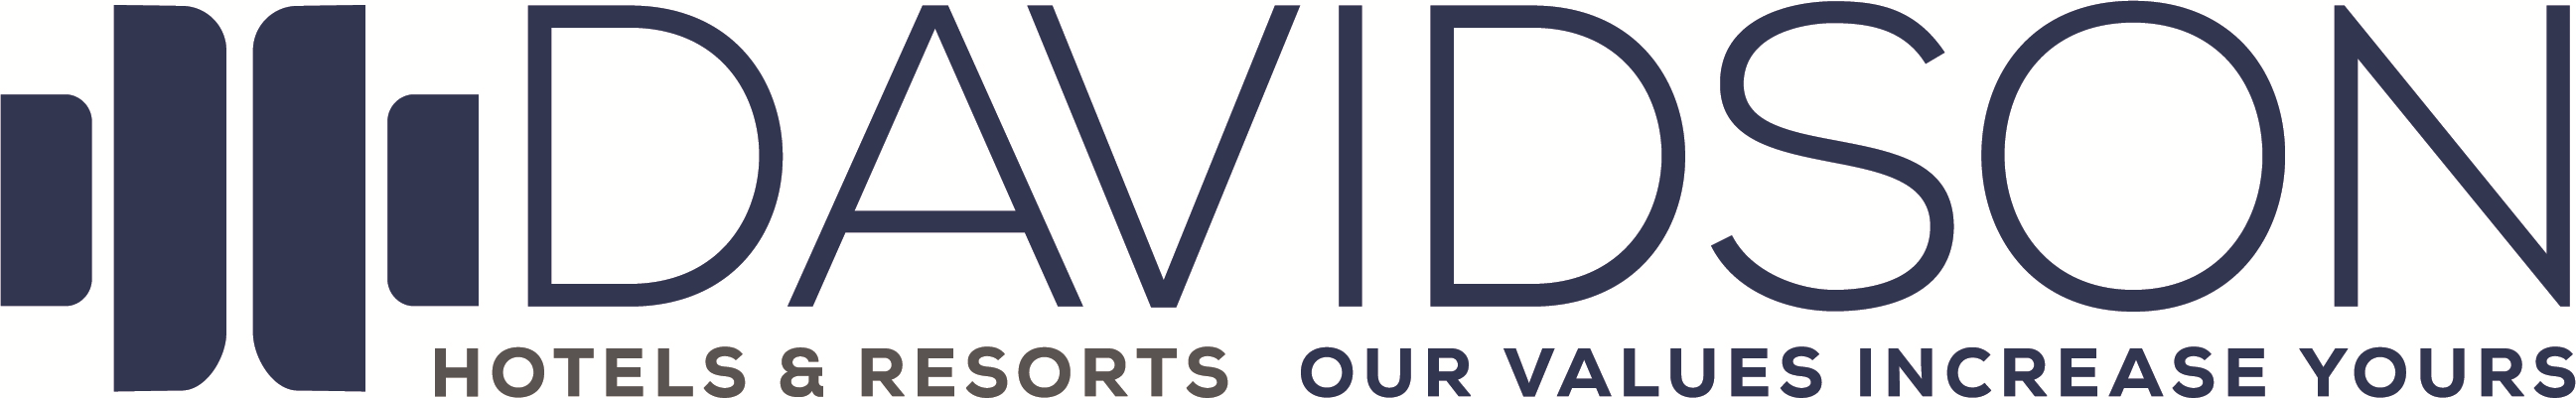 Davidson Hotels & Resorts Corporate Office Company Logo